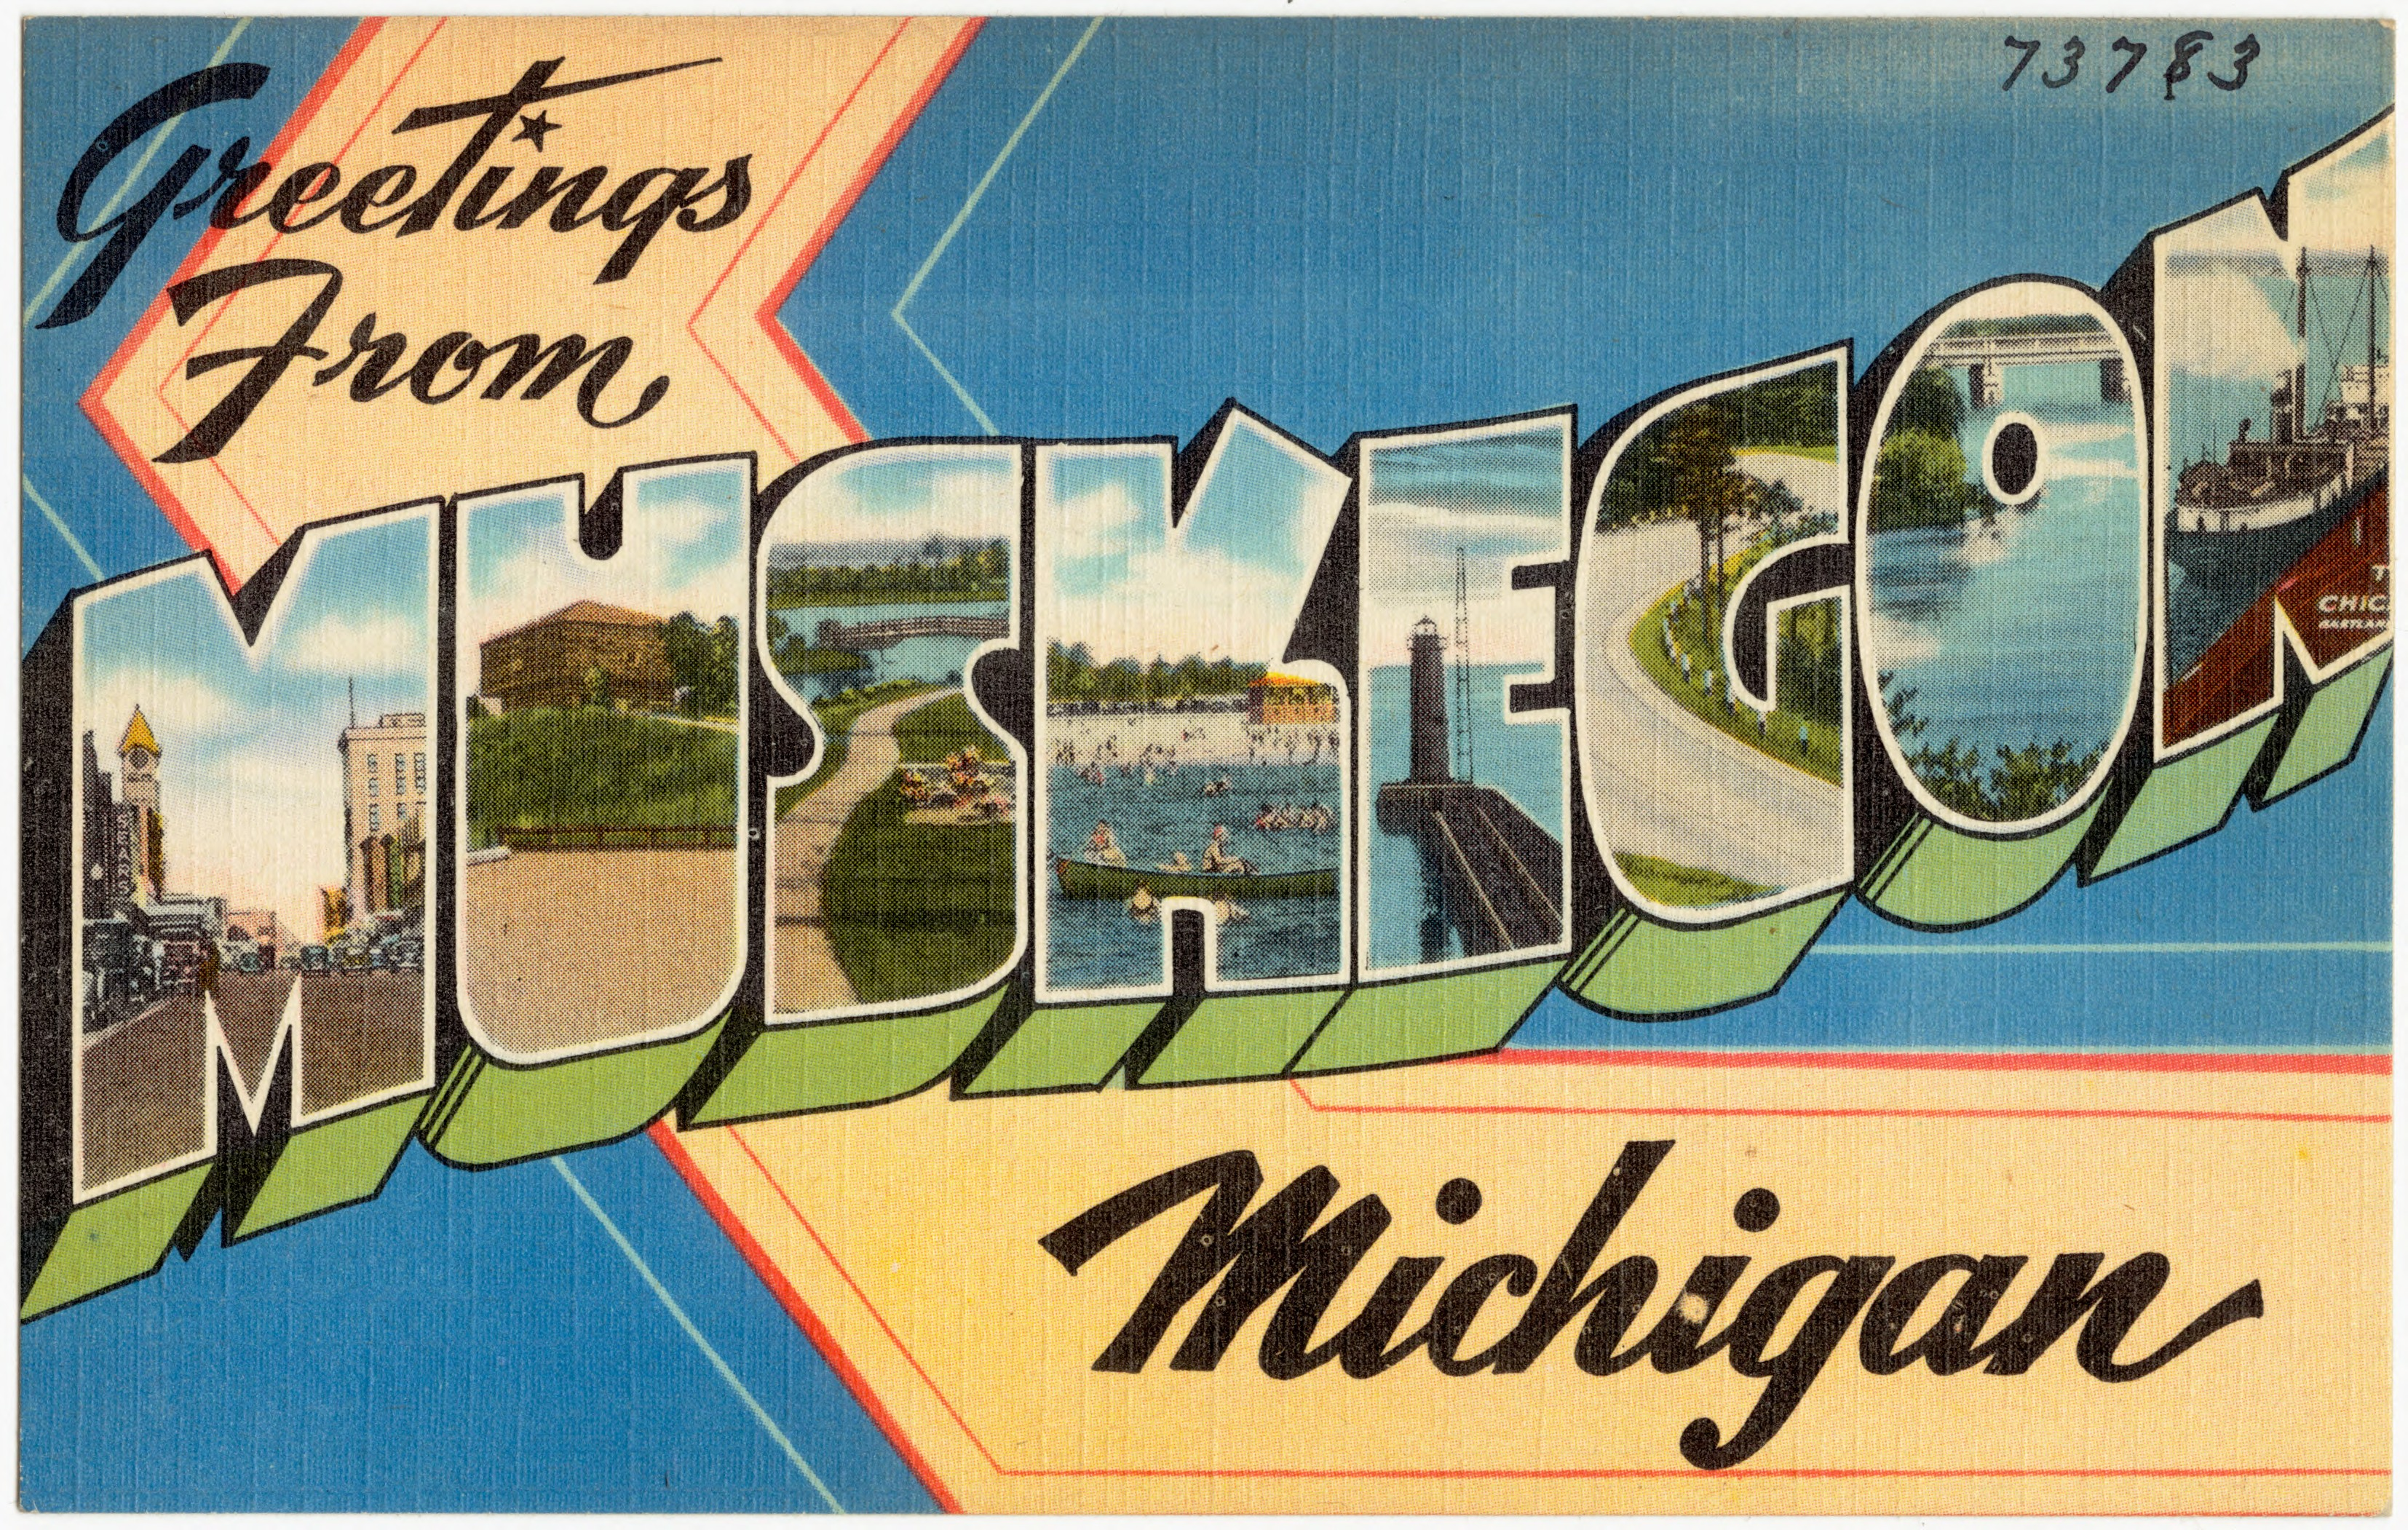 Filegreetings from muskegon michigan 73783g wikimedia commons filegreetings from muskegon michigan 73783g m4hsunfo